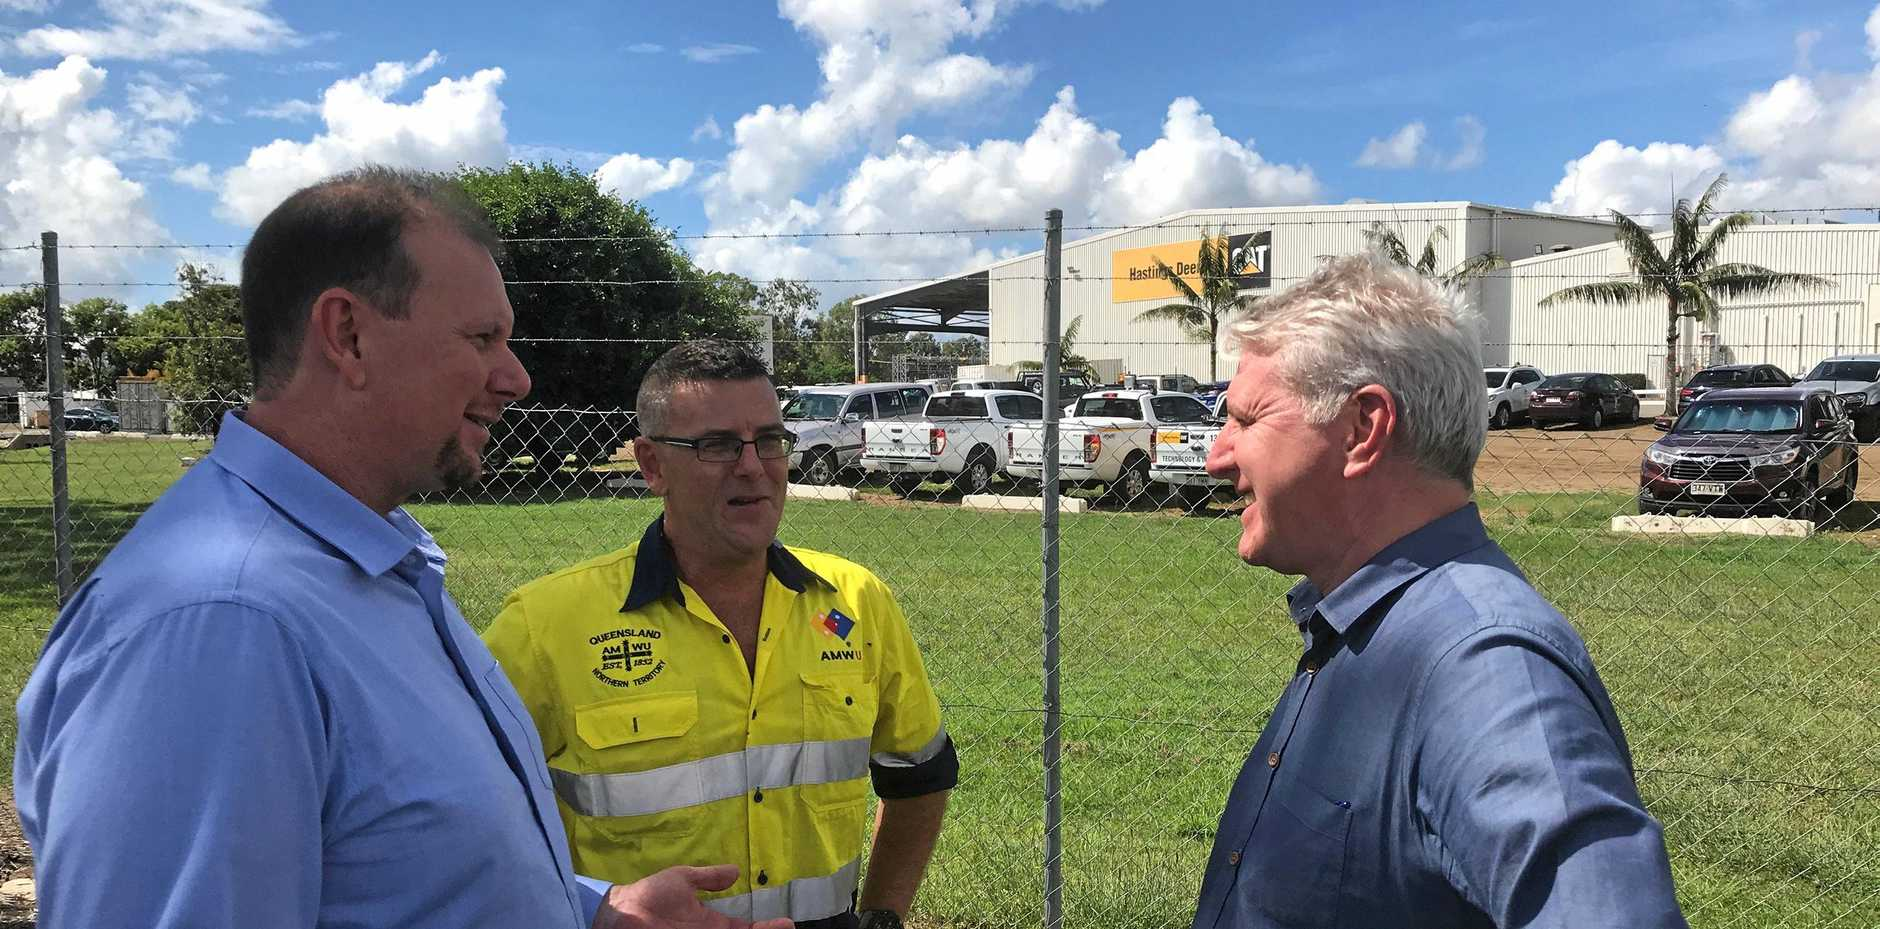 CONCERNED: Capricornia candidate Russell Robertson, Rohan Webb from the AMWU and Labor MP Brendan O'Connor discuss the threat of casualisation.